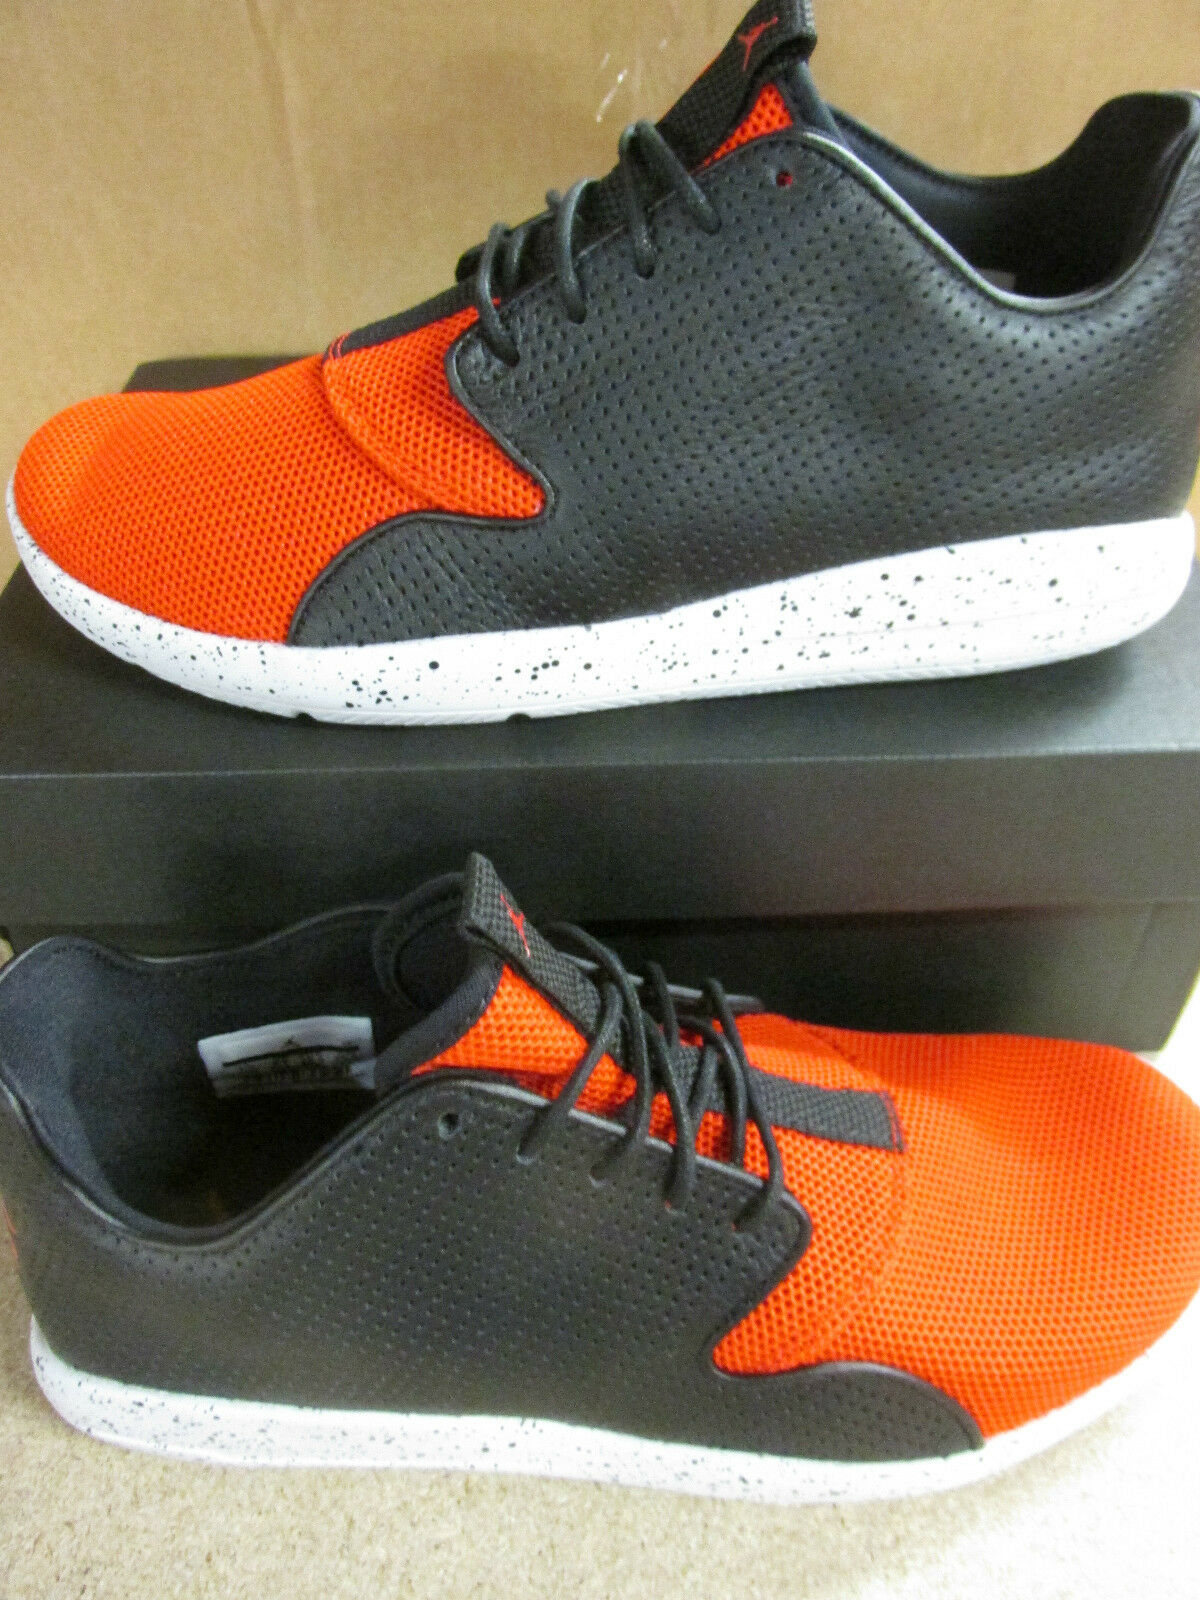 nike air jordan eclipse mens trainers 724010 018 sneakers shoes Cheap and beautiful fashion